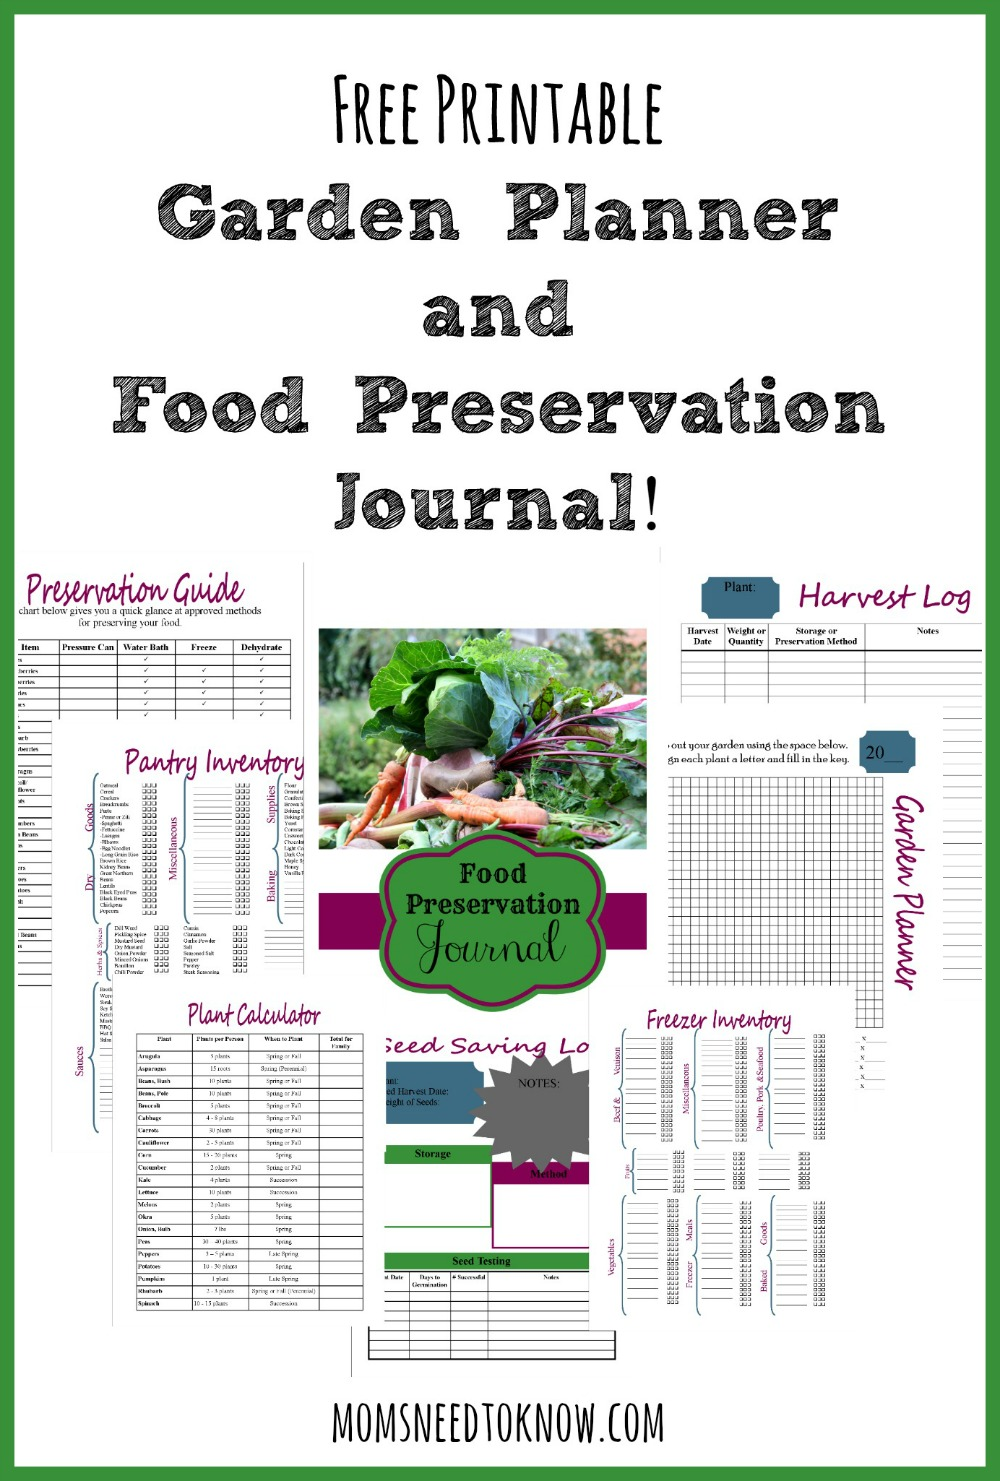 photo about Free Printable Garden Planner referred to as Cost-free Printable Backyard Planner and Food stuff Preservation Magazine